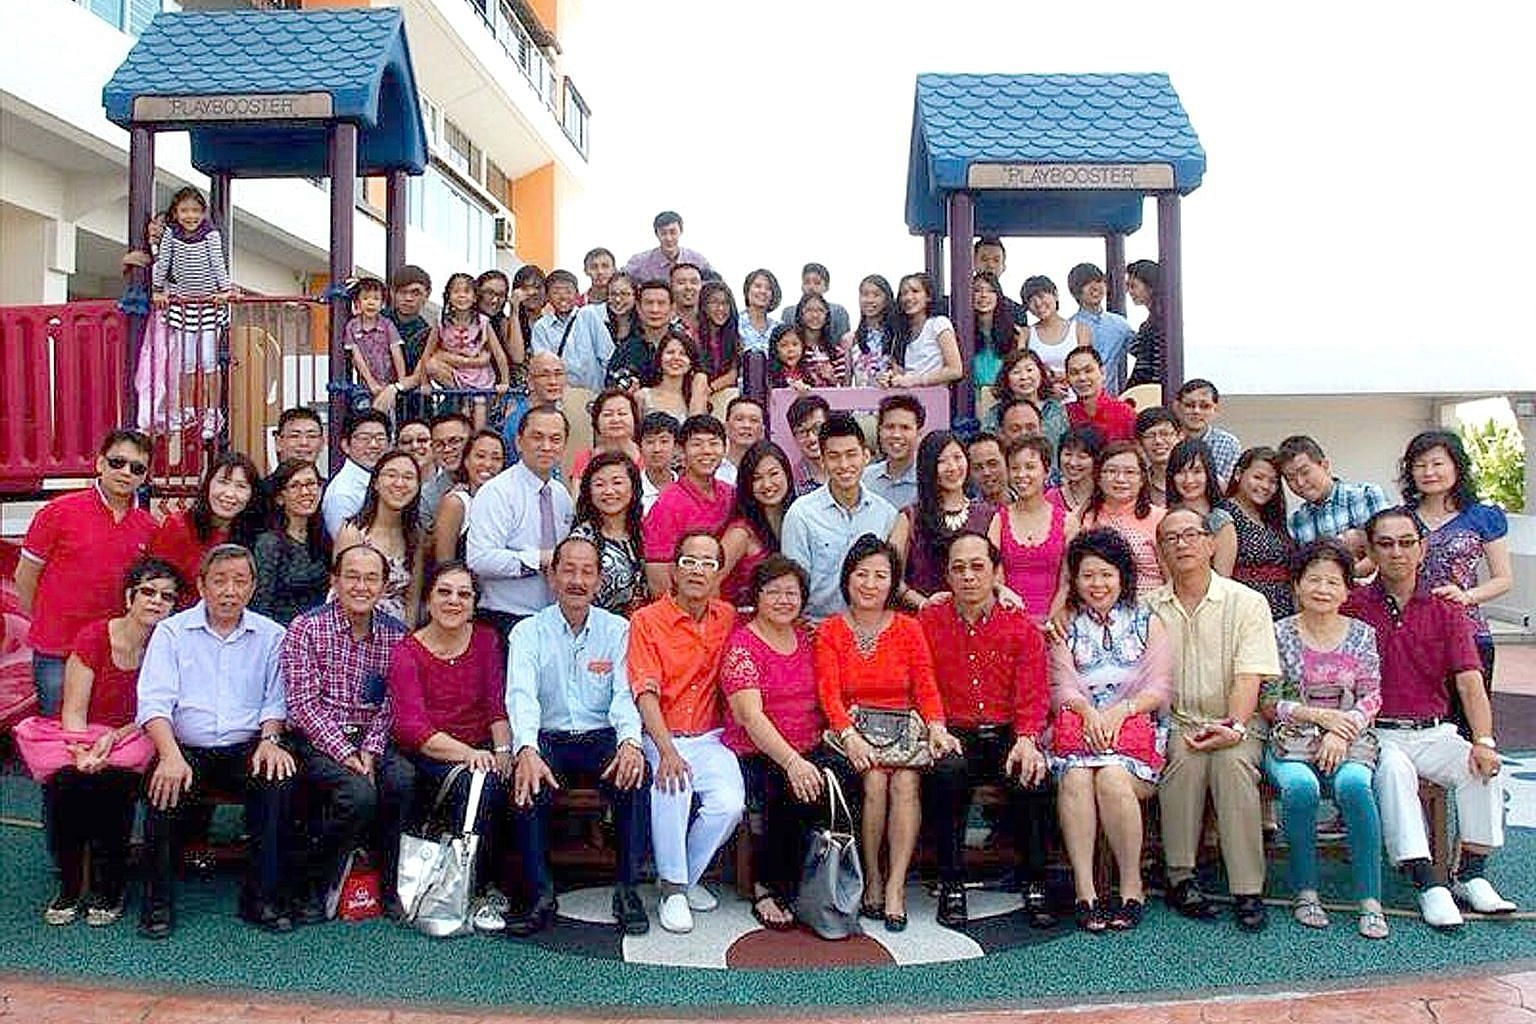 In 2014, more than 90 family members across three generations turned up for the Thia family's Chinese New Year gathering. Since then, a big gathering has been a regular thing for the family.